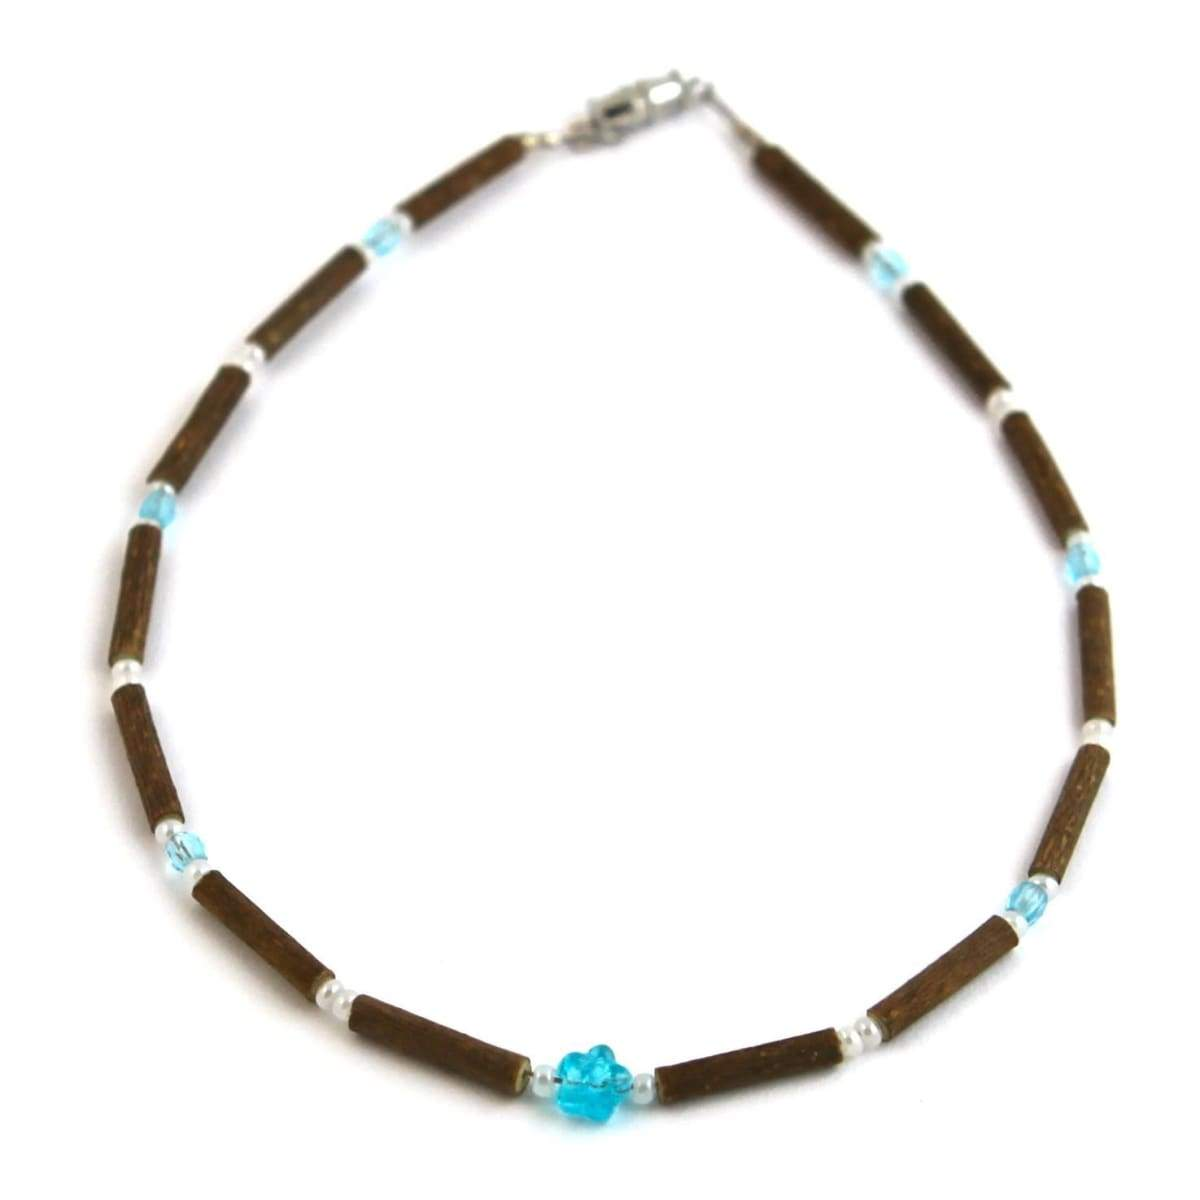 Hazelwood Aqua Flower - 11 Necklace - Barrel Twist Clasp - Hazelwood Jewelry